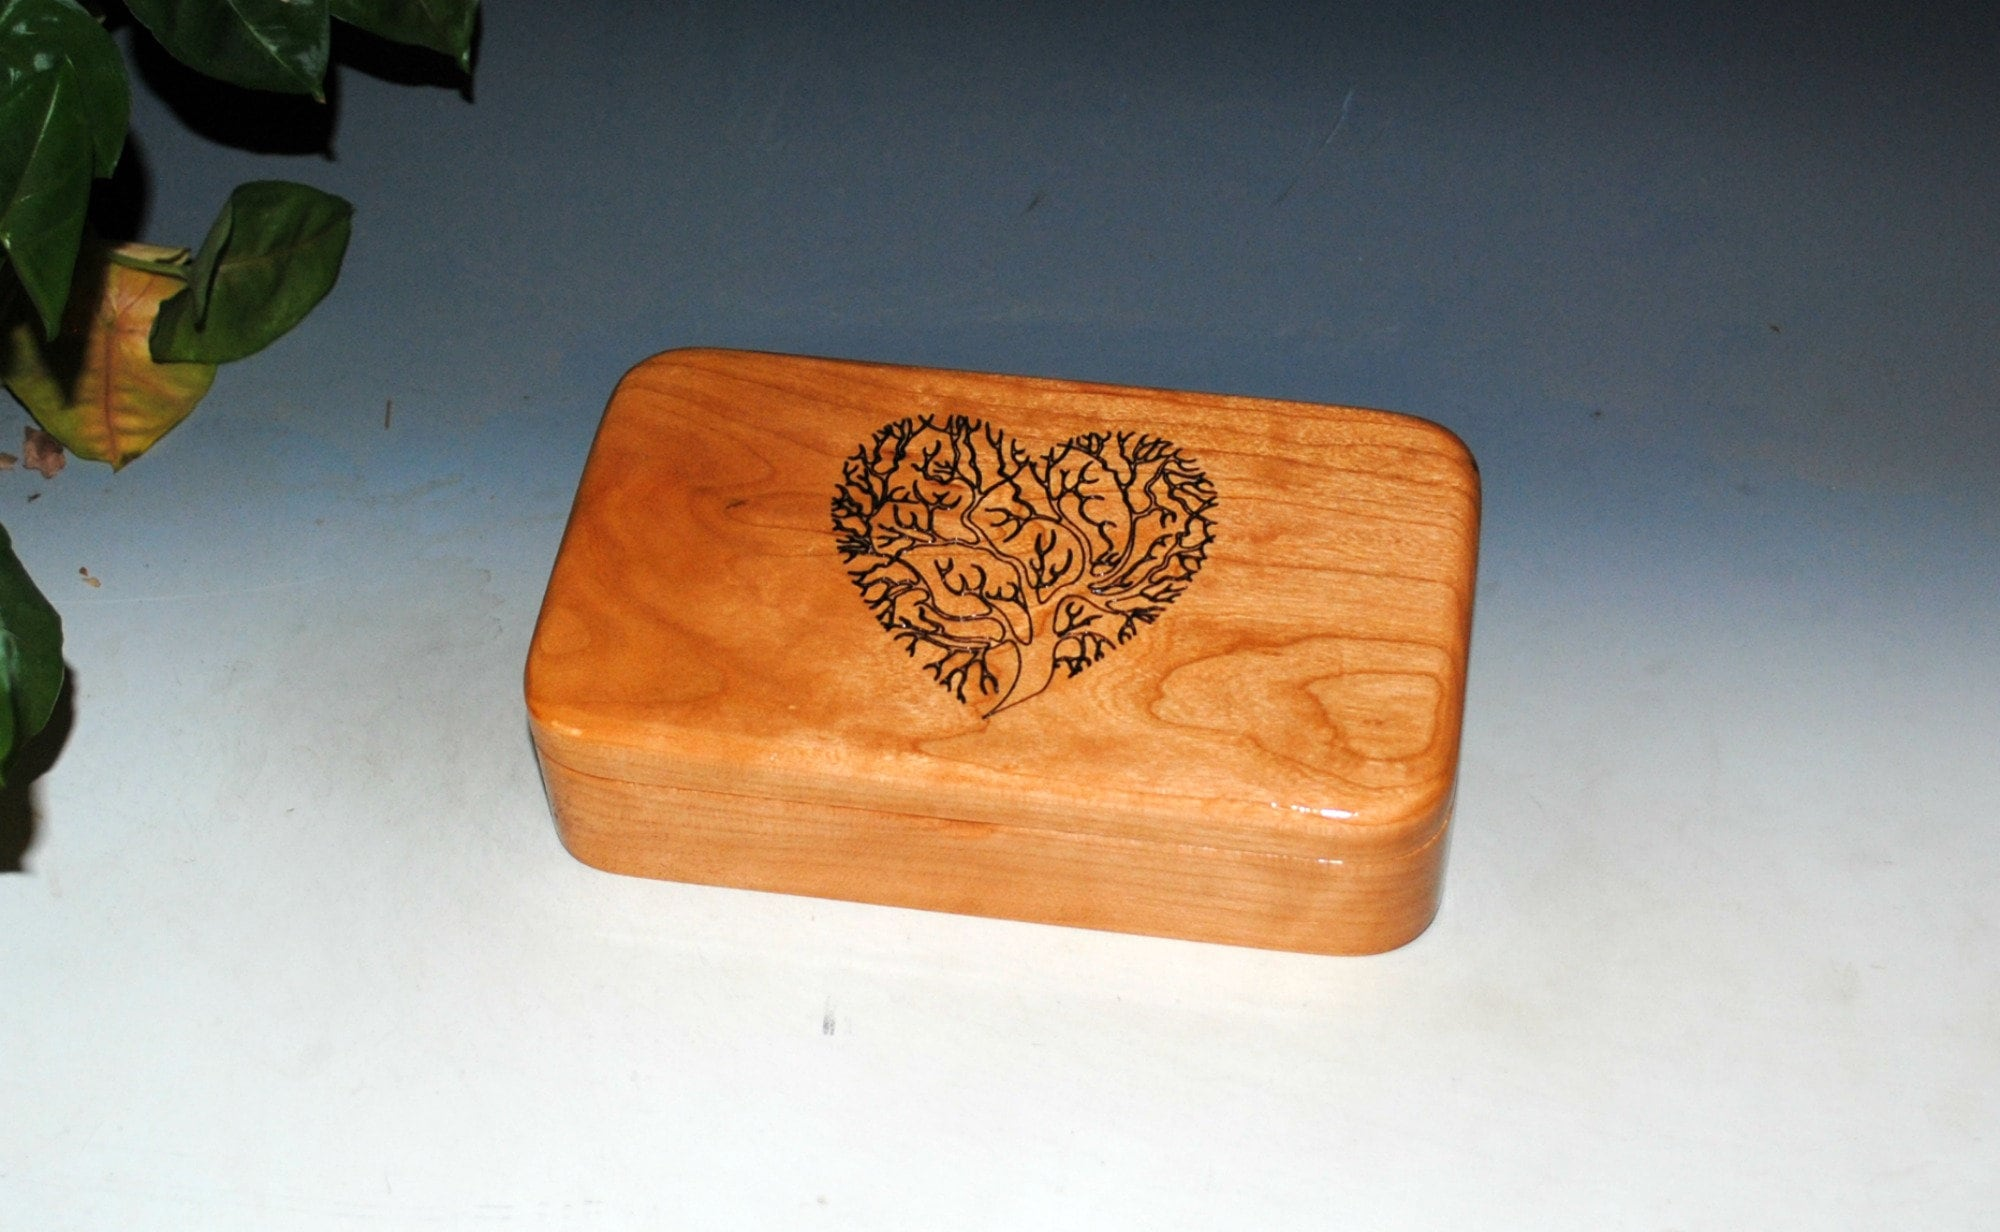 Jewelry box engraving gift box personalizes wood magnetic closure massively American cherry tree